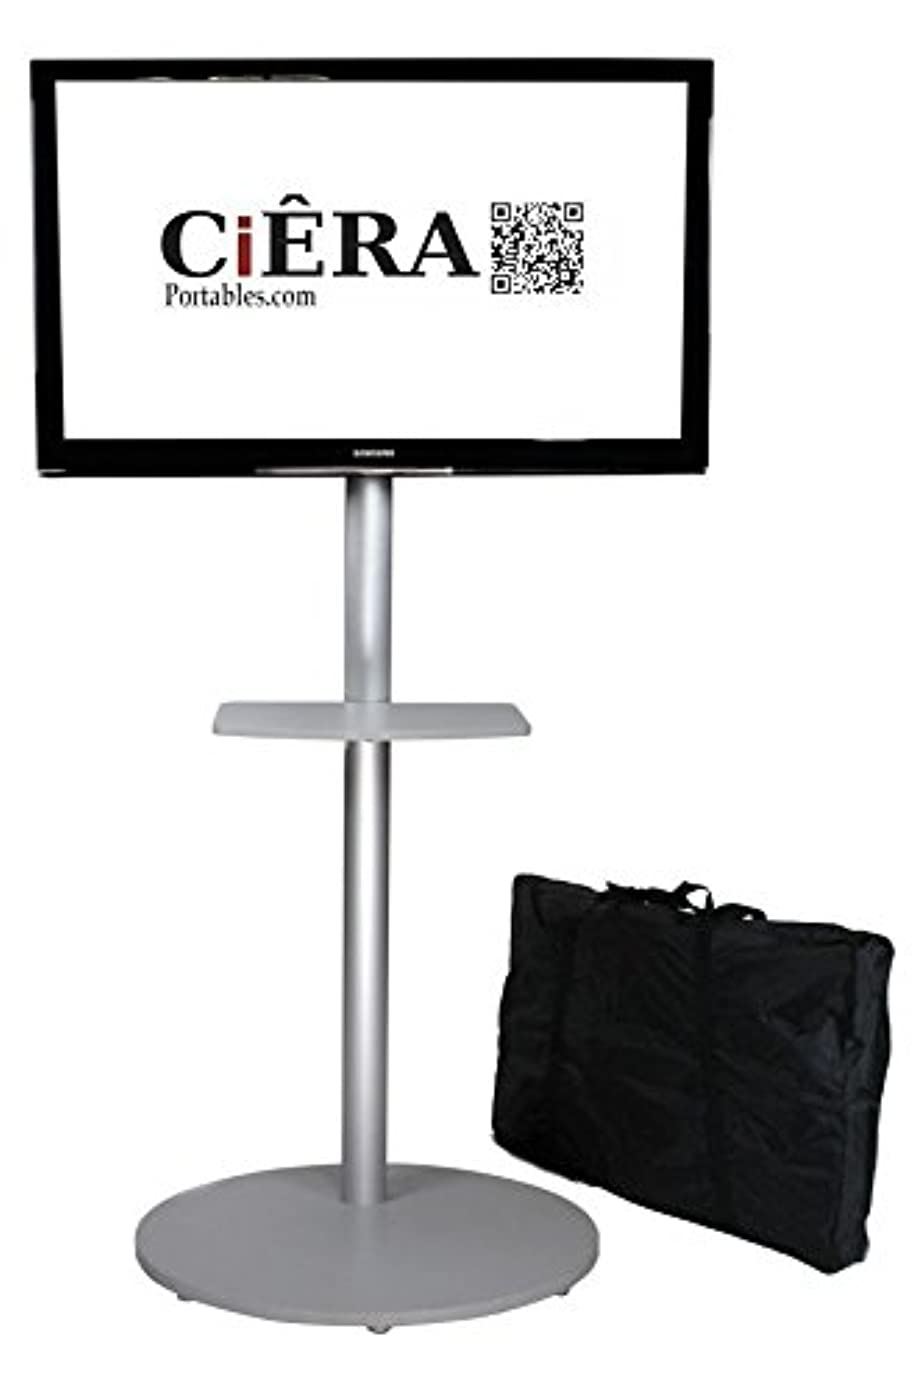 CiERA EZ StandTall ONE Portable TV Stand with Padded Carrying Case and Shelf for 28-70 Inch TV's - Silver